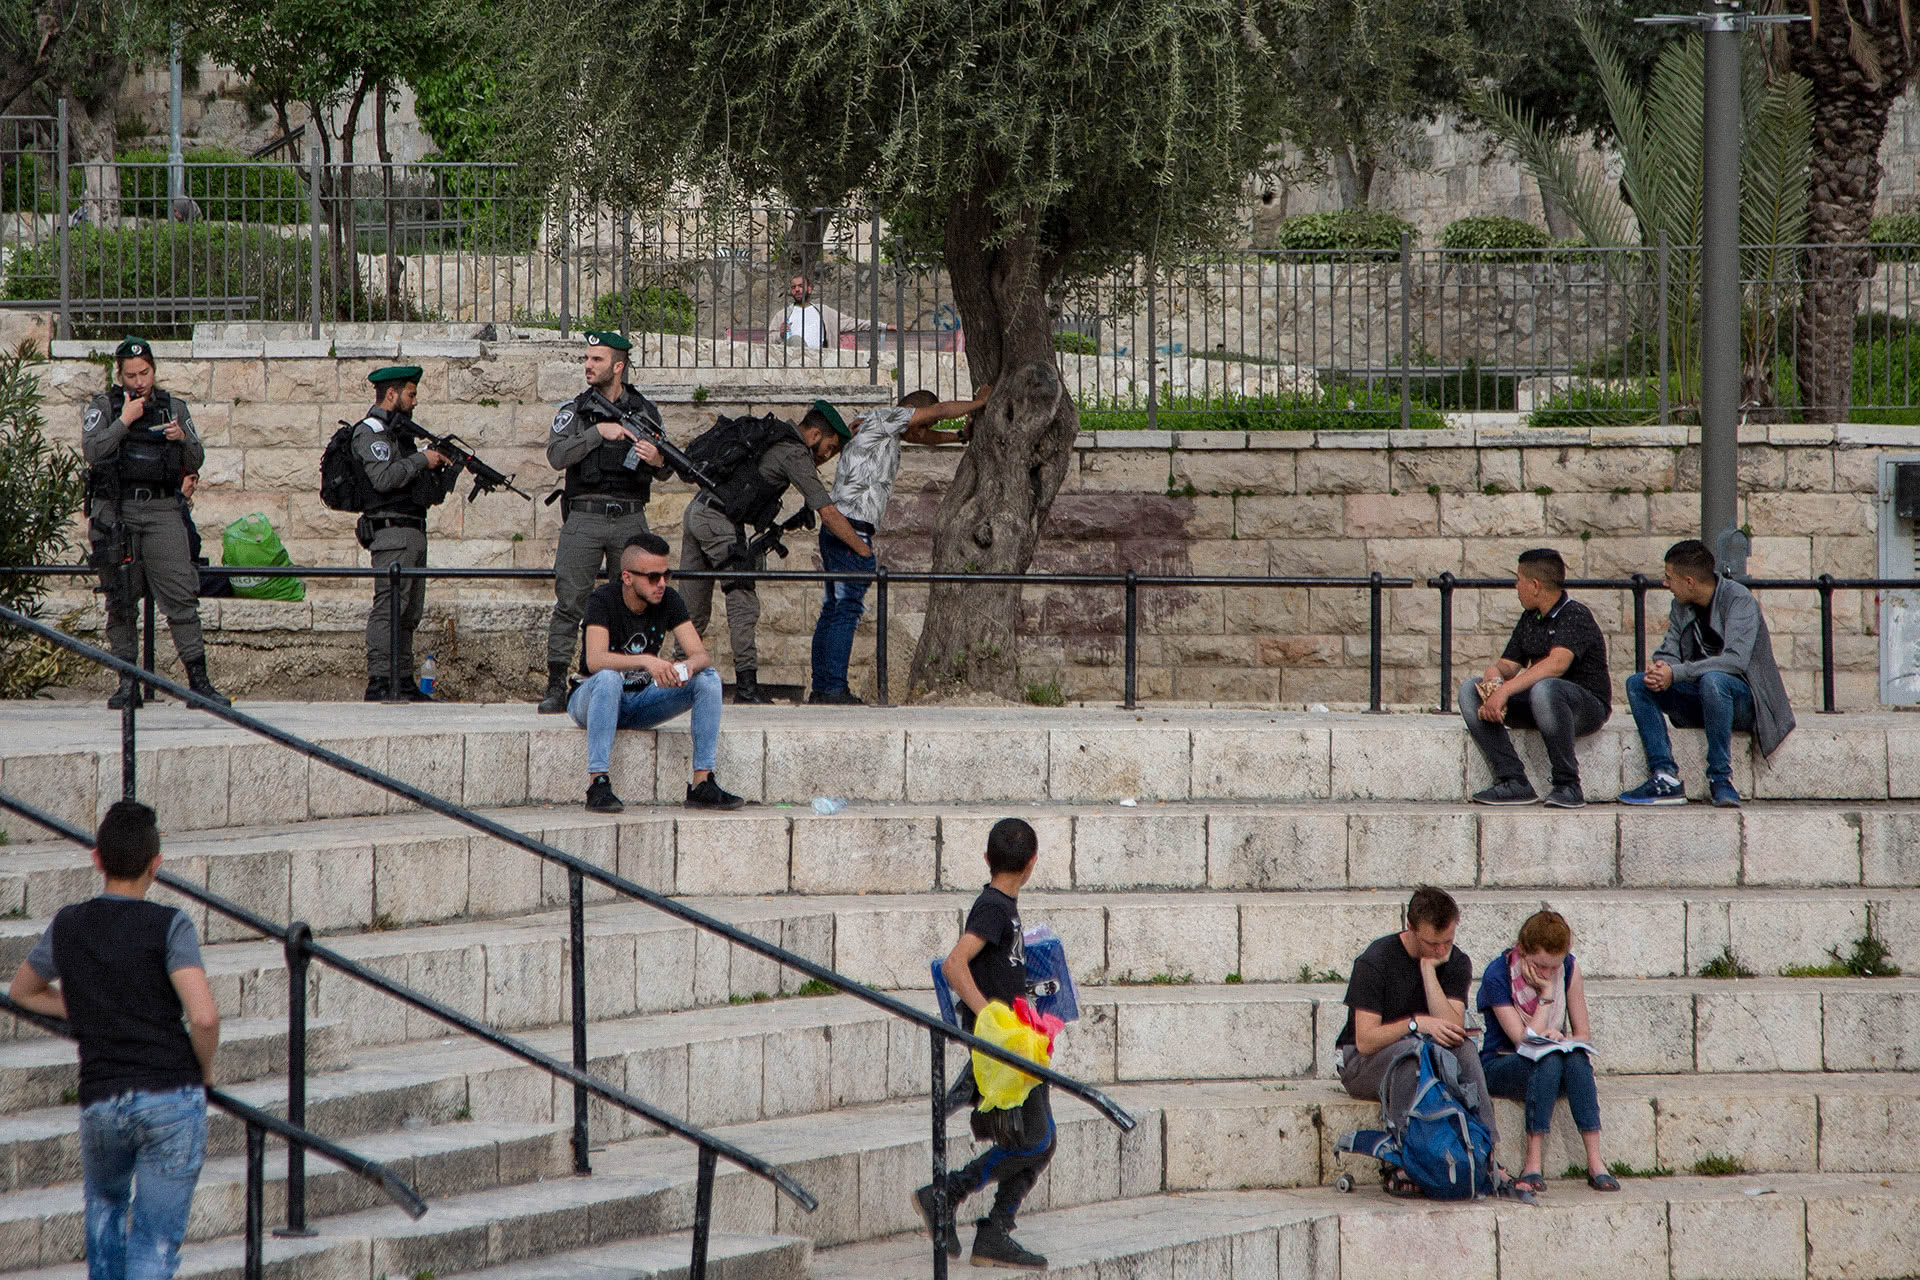 Israeli police forces body search a Palestinian youth near Damascus gate in the Old City of Jerusalem as a group of others watch. (Photo: Faiz Abu Rmeleh)